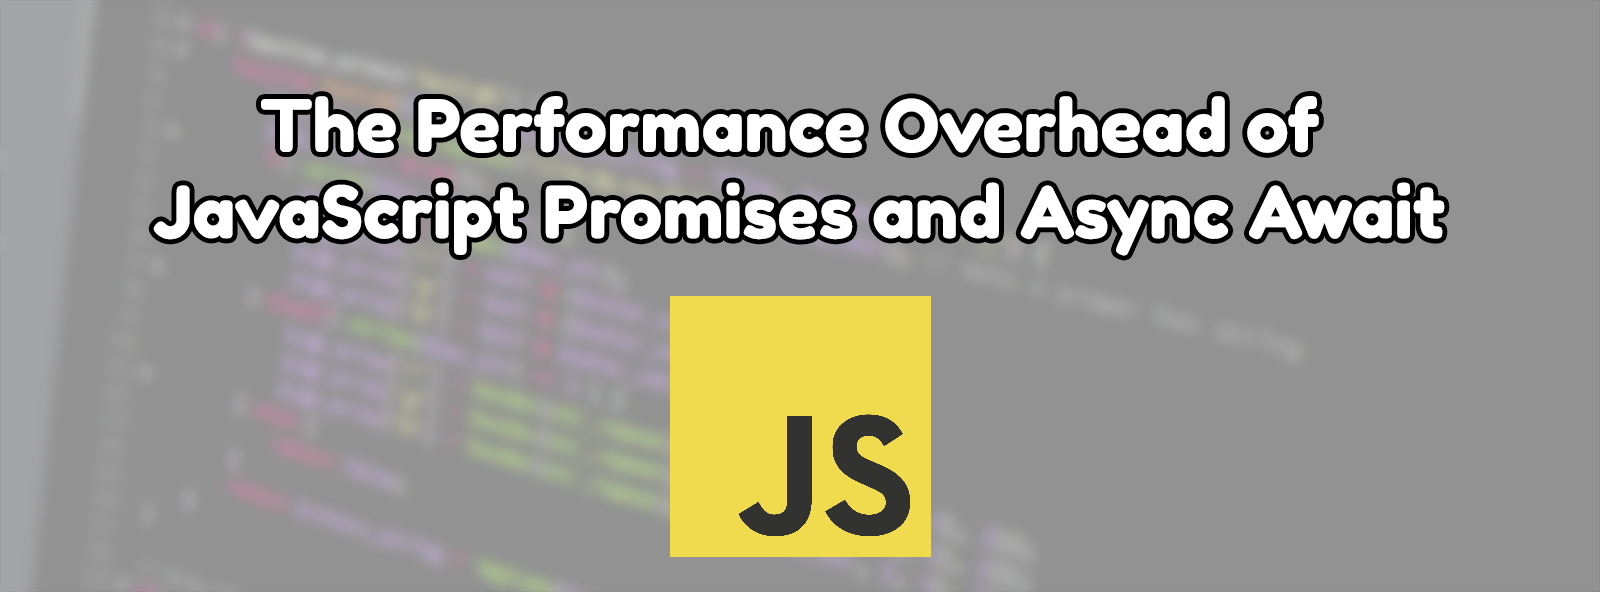 The Performance Overhead of JavaScript Promises and Async Await